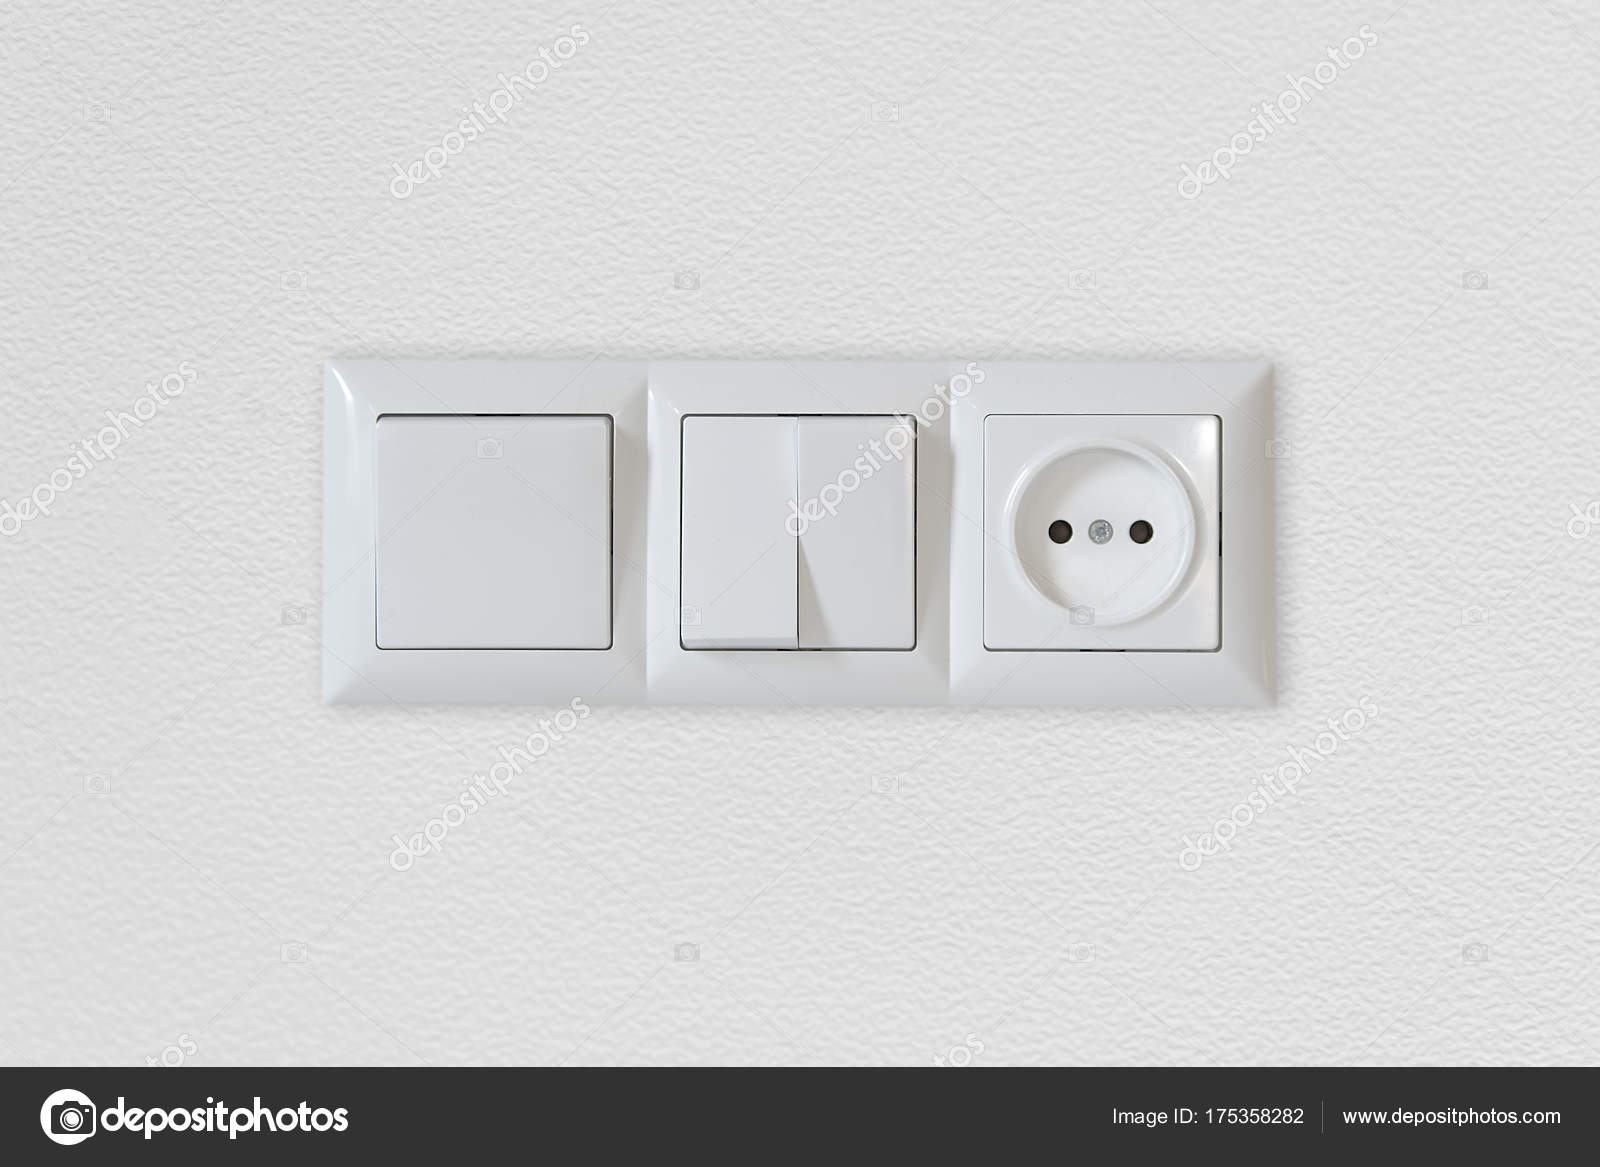 Electric Light Switch Socket Empty Wall Electrical Power Socket Plug ...